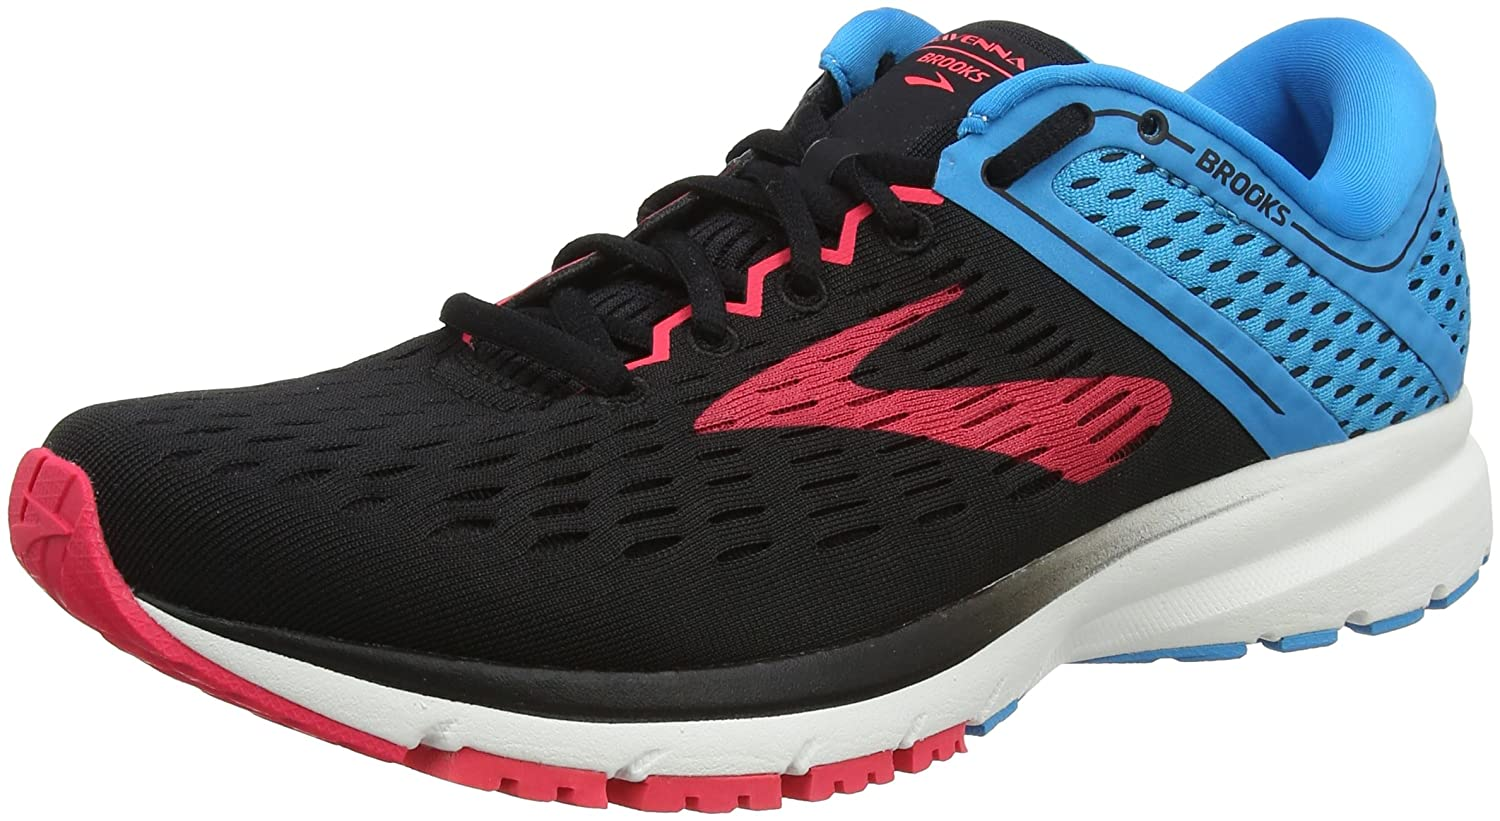 Brooks Womens Ravenna 9 B071NSQ8K6 10.5 B(M) US|Black/Blue/Pink